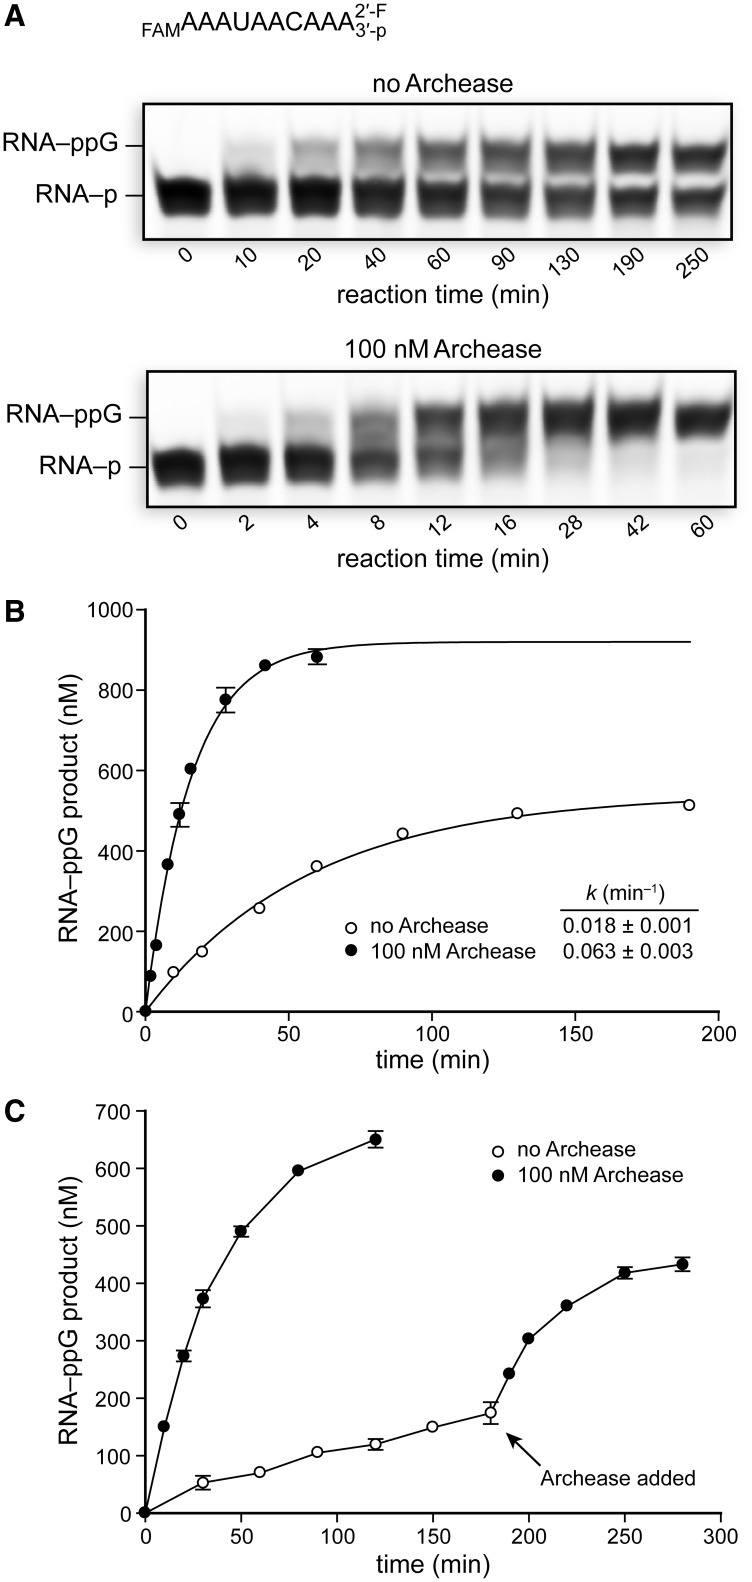 Effects of Archease on the rate of RtcB-catalyzed guanylylation of RNA with a 2′-F/3′-P terminus. RtcB was pre-guanylylated by incubation with GTP and Mn(II), and the 3′ RNA fragment was not included to prevent ligation. ( A ) The guanylylation rate of a 2′-F/3′-P RNA terminus by RtcB alone or with the inclusion of 100 nM Archease. RNA guanylylation reaction mixtures contained 50 mM Bis–Tris buffer (pH 7.0), NaCl (300 mM), MnCl 2 (0.25 mM), GTP (0.10 mM), P. horikoshii RtcB (5 μM) and RNA substrate (1.0 μM). (RNA substrate is shown at top.) Reaction mixtures were incubated at 70°C, and aliquots were removed at the indicated times and quenched with an equal volume of RNA gel-loading buffer. ( B ) Plots of RNA–ppG product formation over time fitted to a single-exponential equation. ( C ) Plots of RtcB-catalyzed RNA–ppG product formation over time in reactions that had the 2′-F/3′-P RNA substrate in excess (0.5 μM RtcB and 1.0 μM RNA substrate). Archease (100 nM) was added where indicated. Values in the plots are the mean ± SE for two separate experiments.